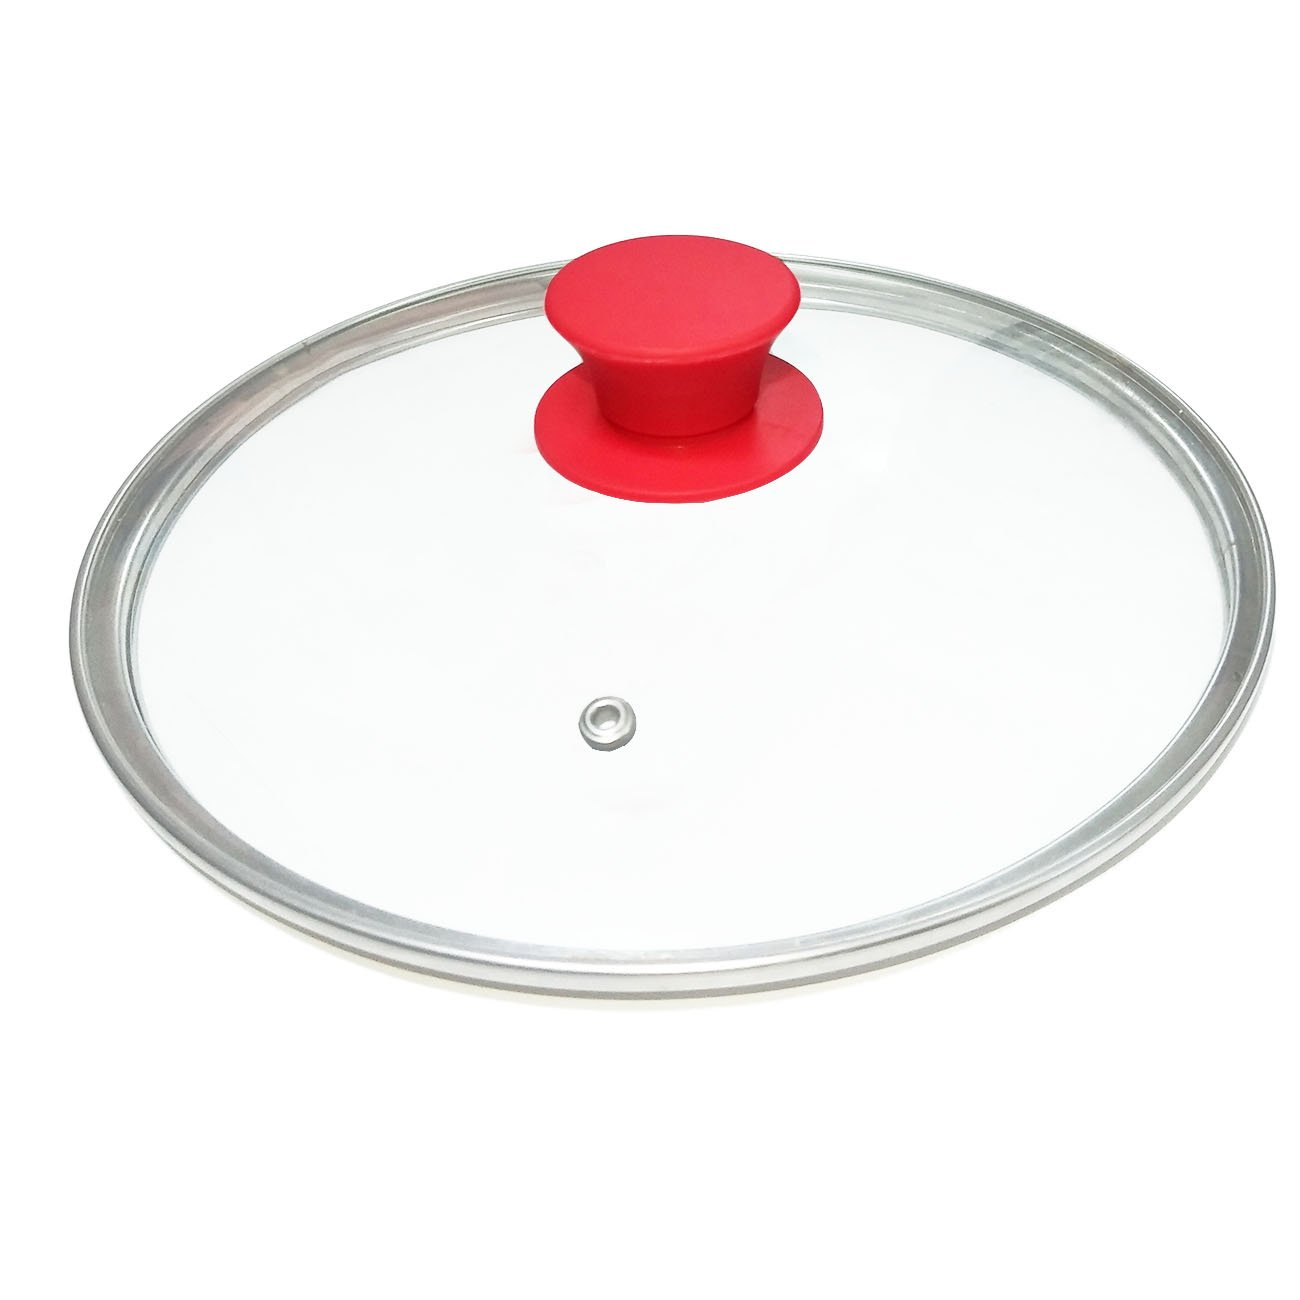 9 Inches Tempered Glass Lid 6 Quart (with Red Silicone Handle Knob) for Instant Pot Accessories+ Free Silicone Sealing Ring for 6 qt + Free Cooker Times Tag